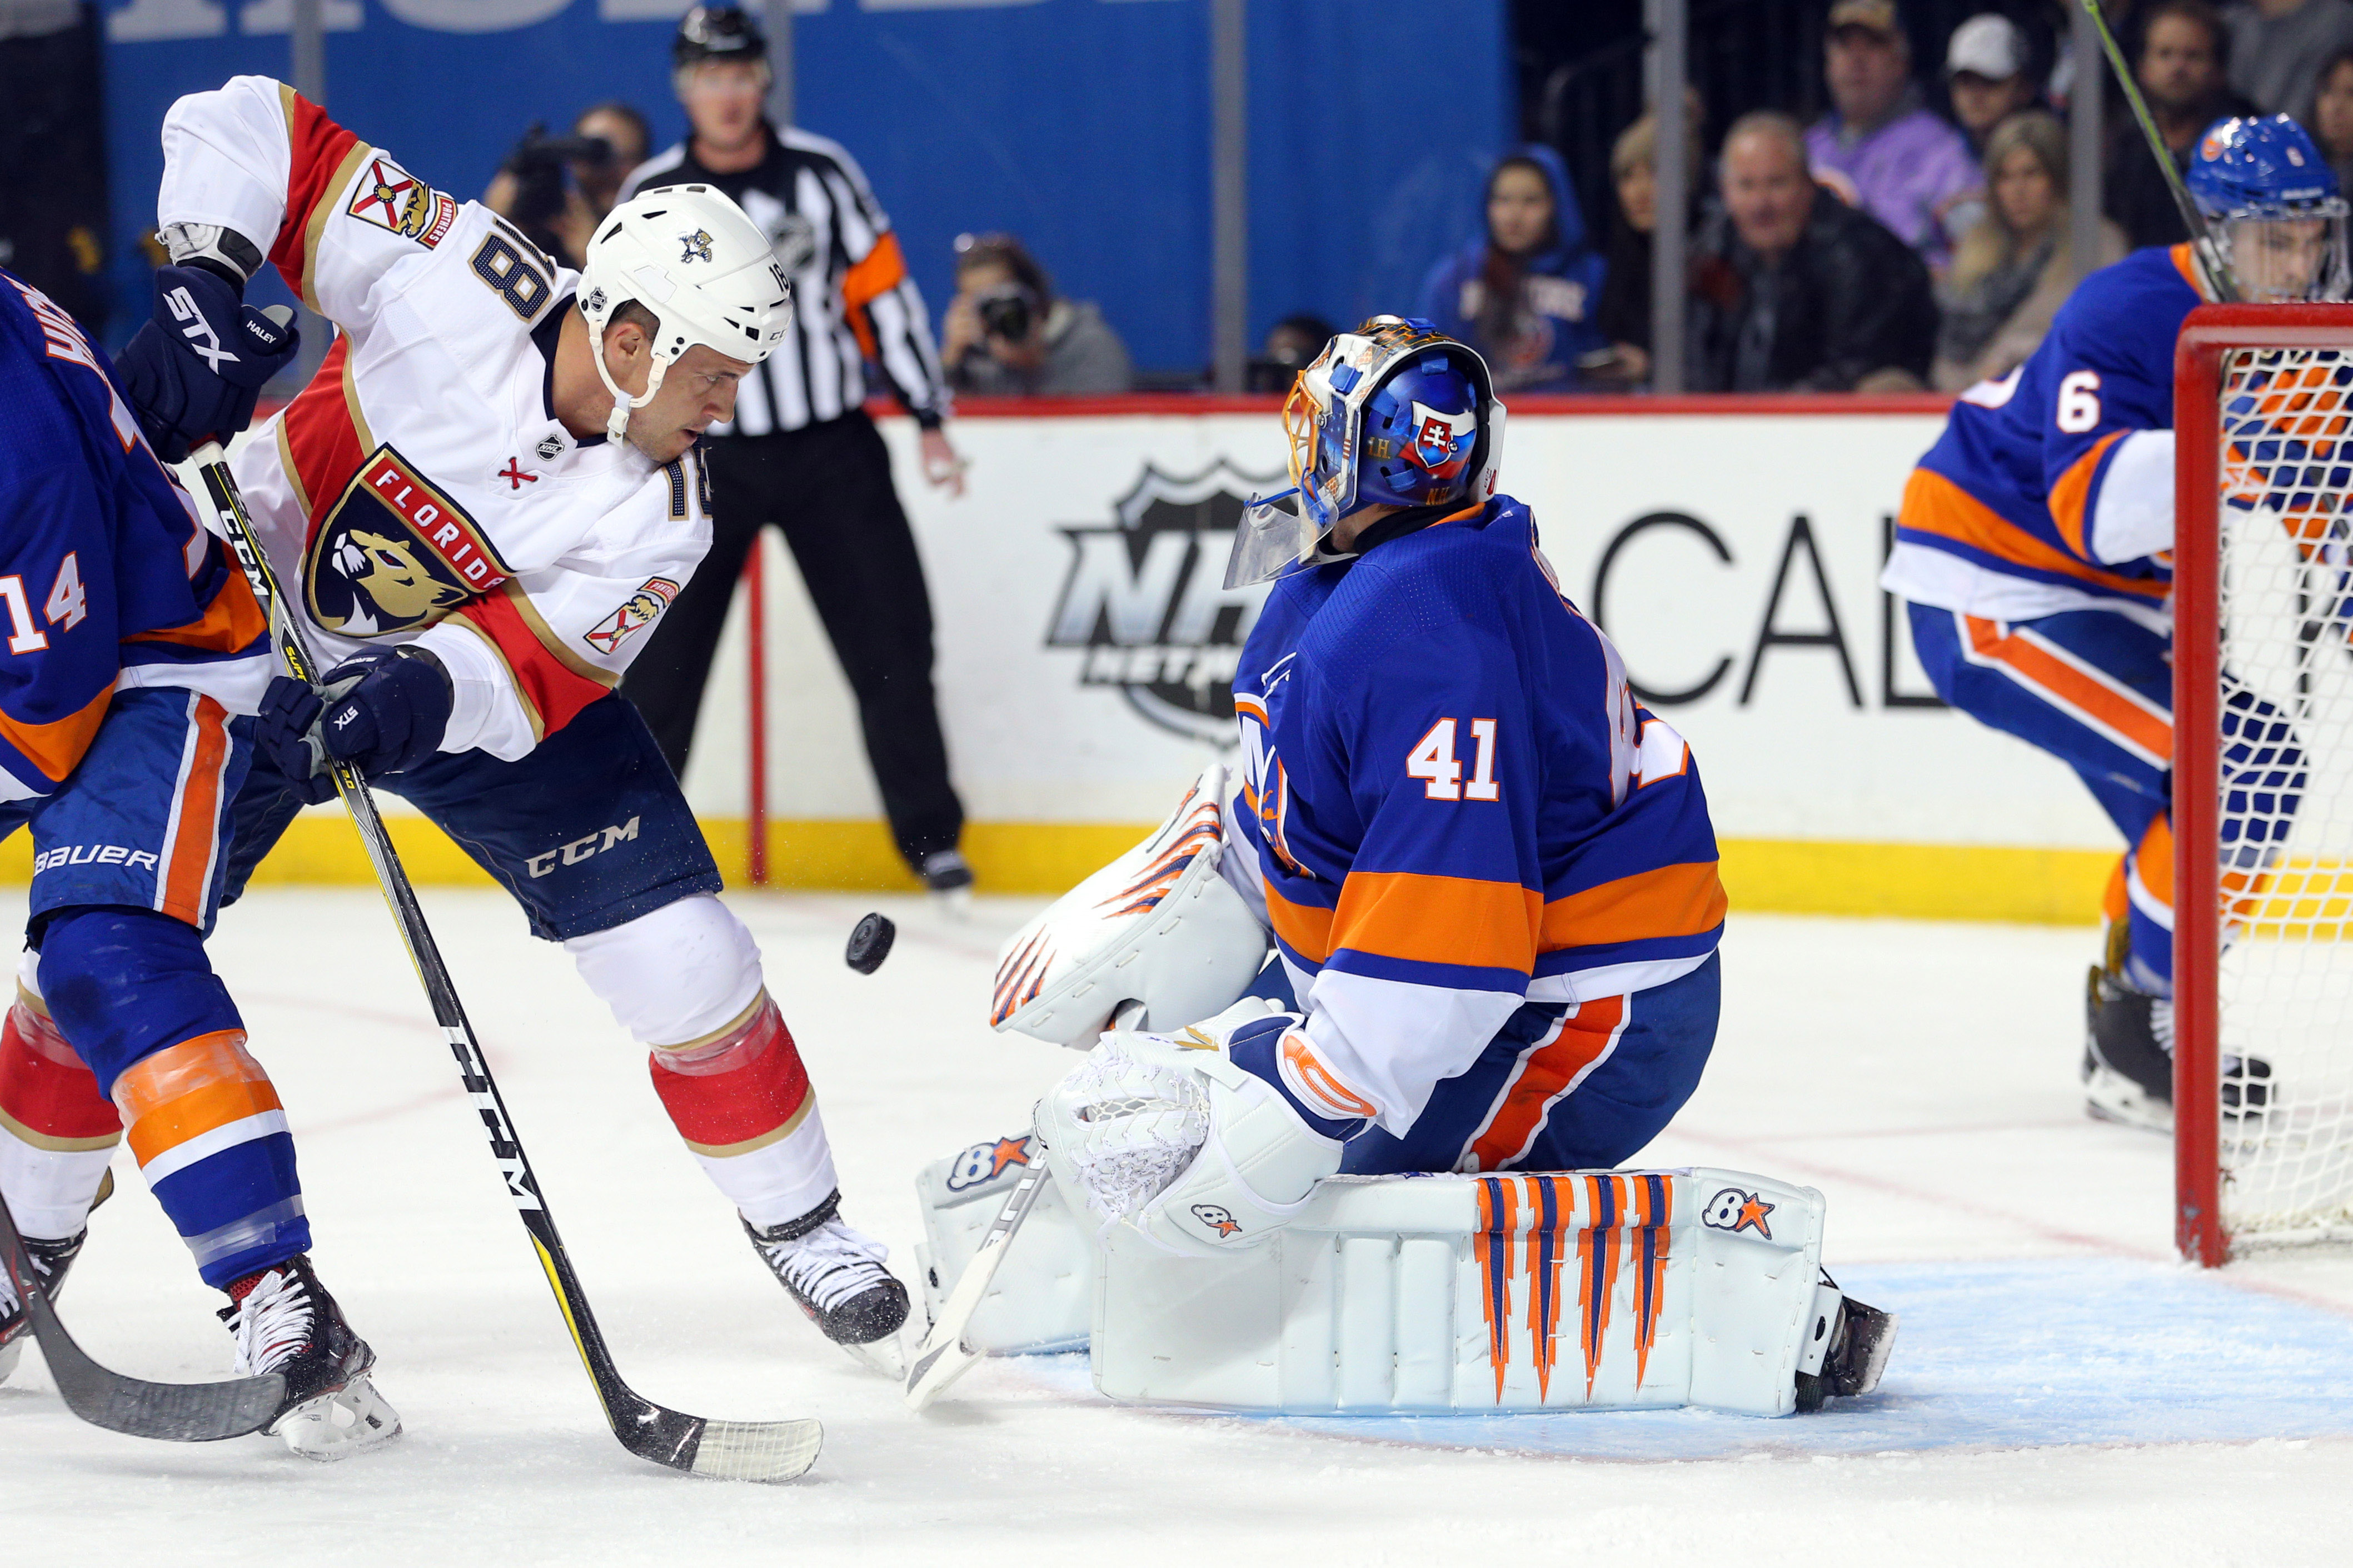 Jan 30, 2018; Brooklyn, NY, USA; New York Islanders goalie Jaroslav Halak (41) allows a goal to Florida Panthers defenseman Michael Matheson (not pictured) in front of Panthers center Micheal Haley (18) during the first period at Barclays Center. Mandatory Credit: Brad Penner-USA TODAY Sports